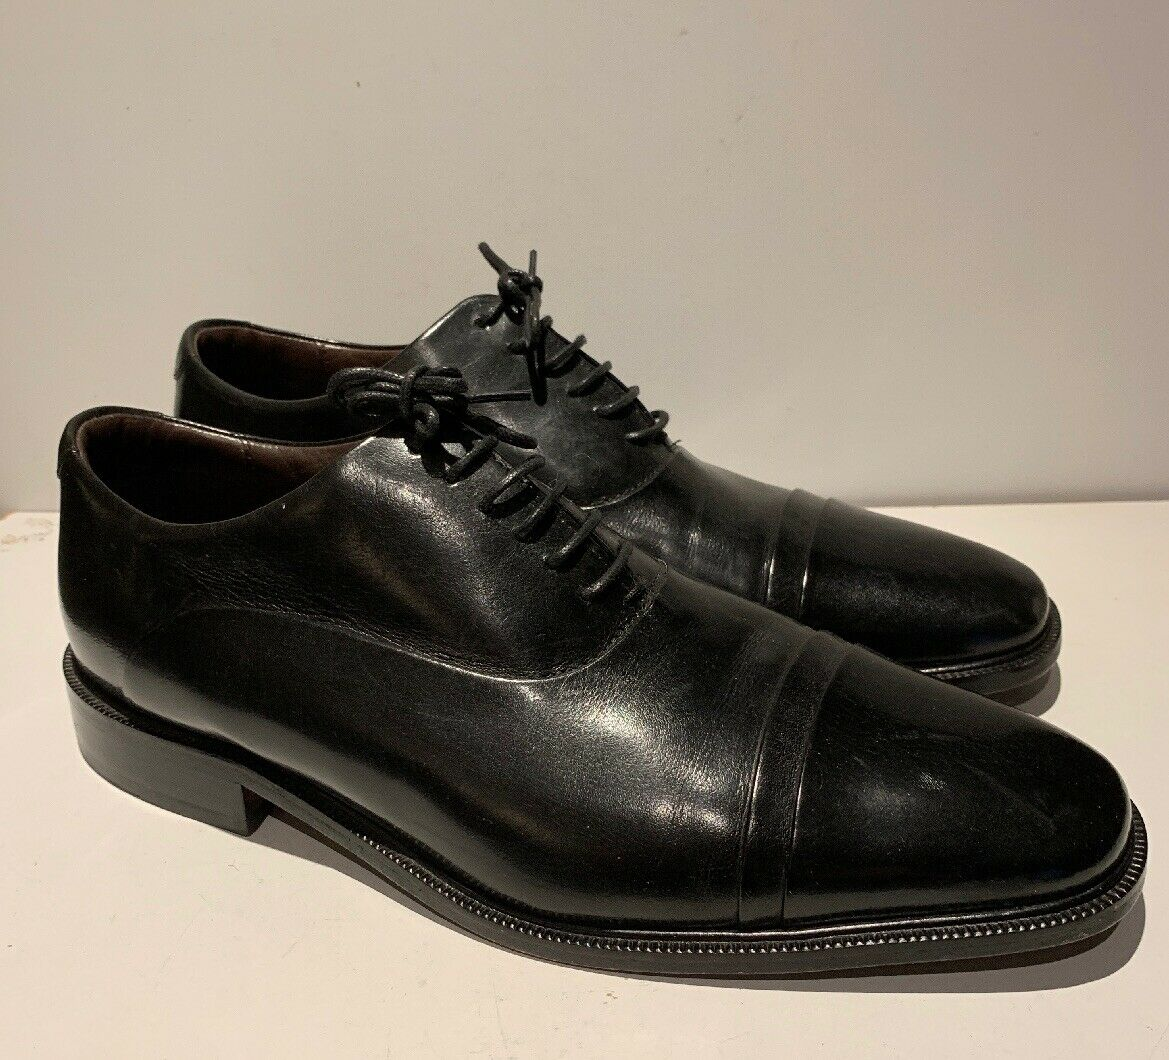 Collezione Real Leather UK Sise 10 Mens shoes